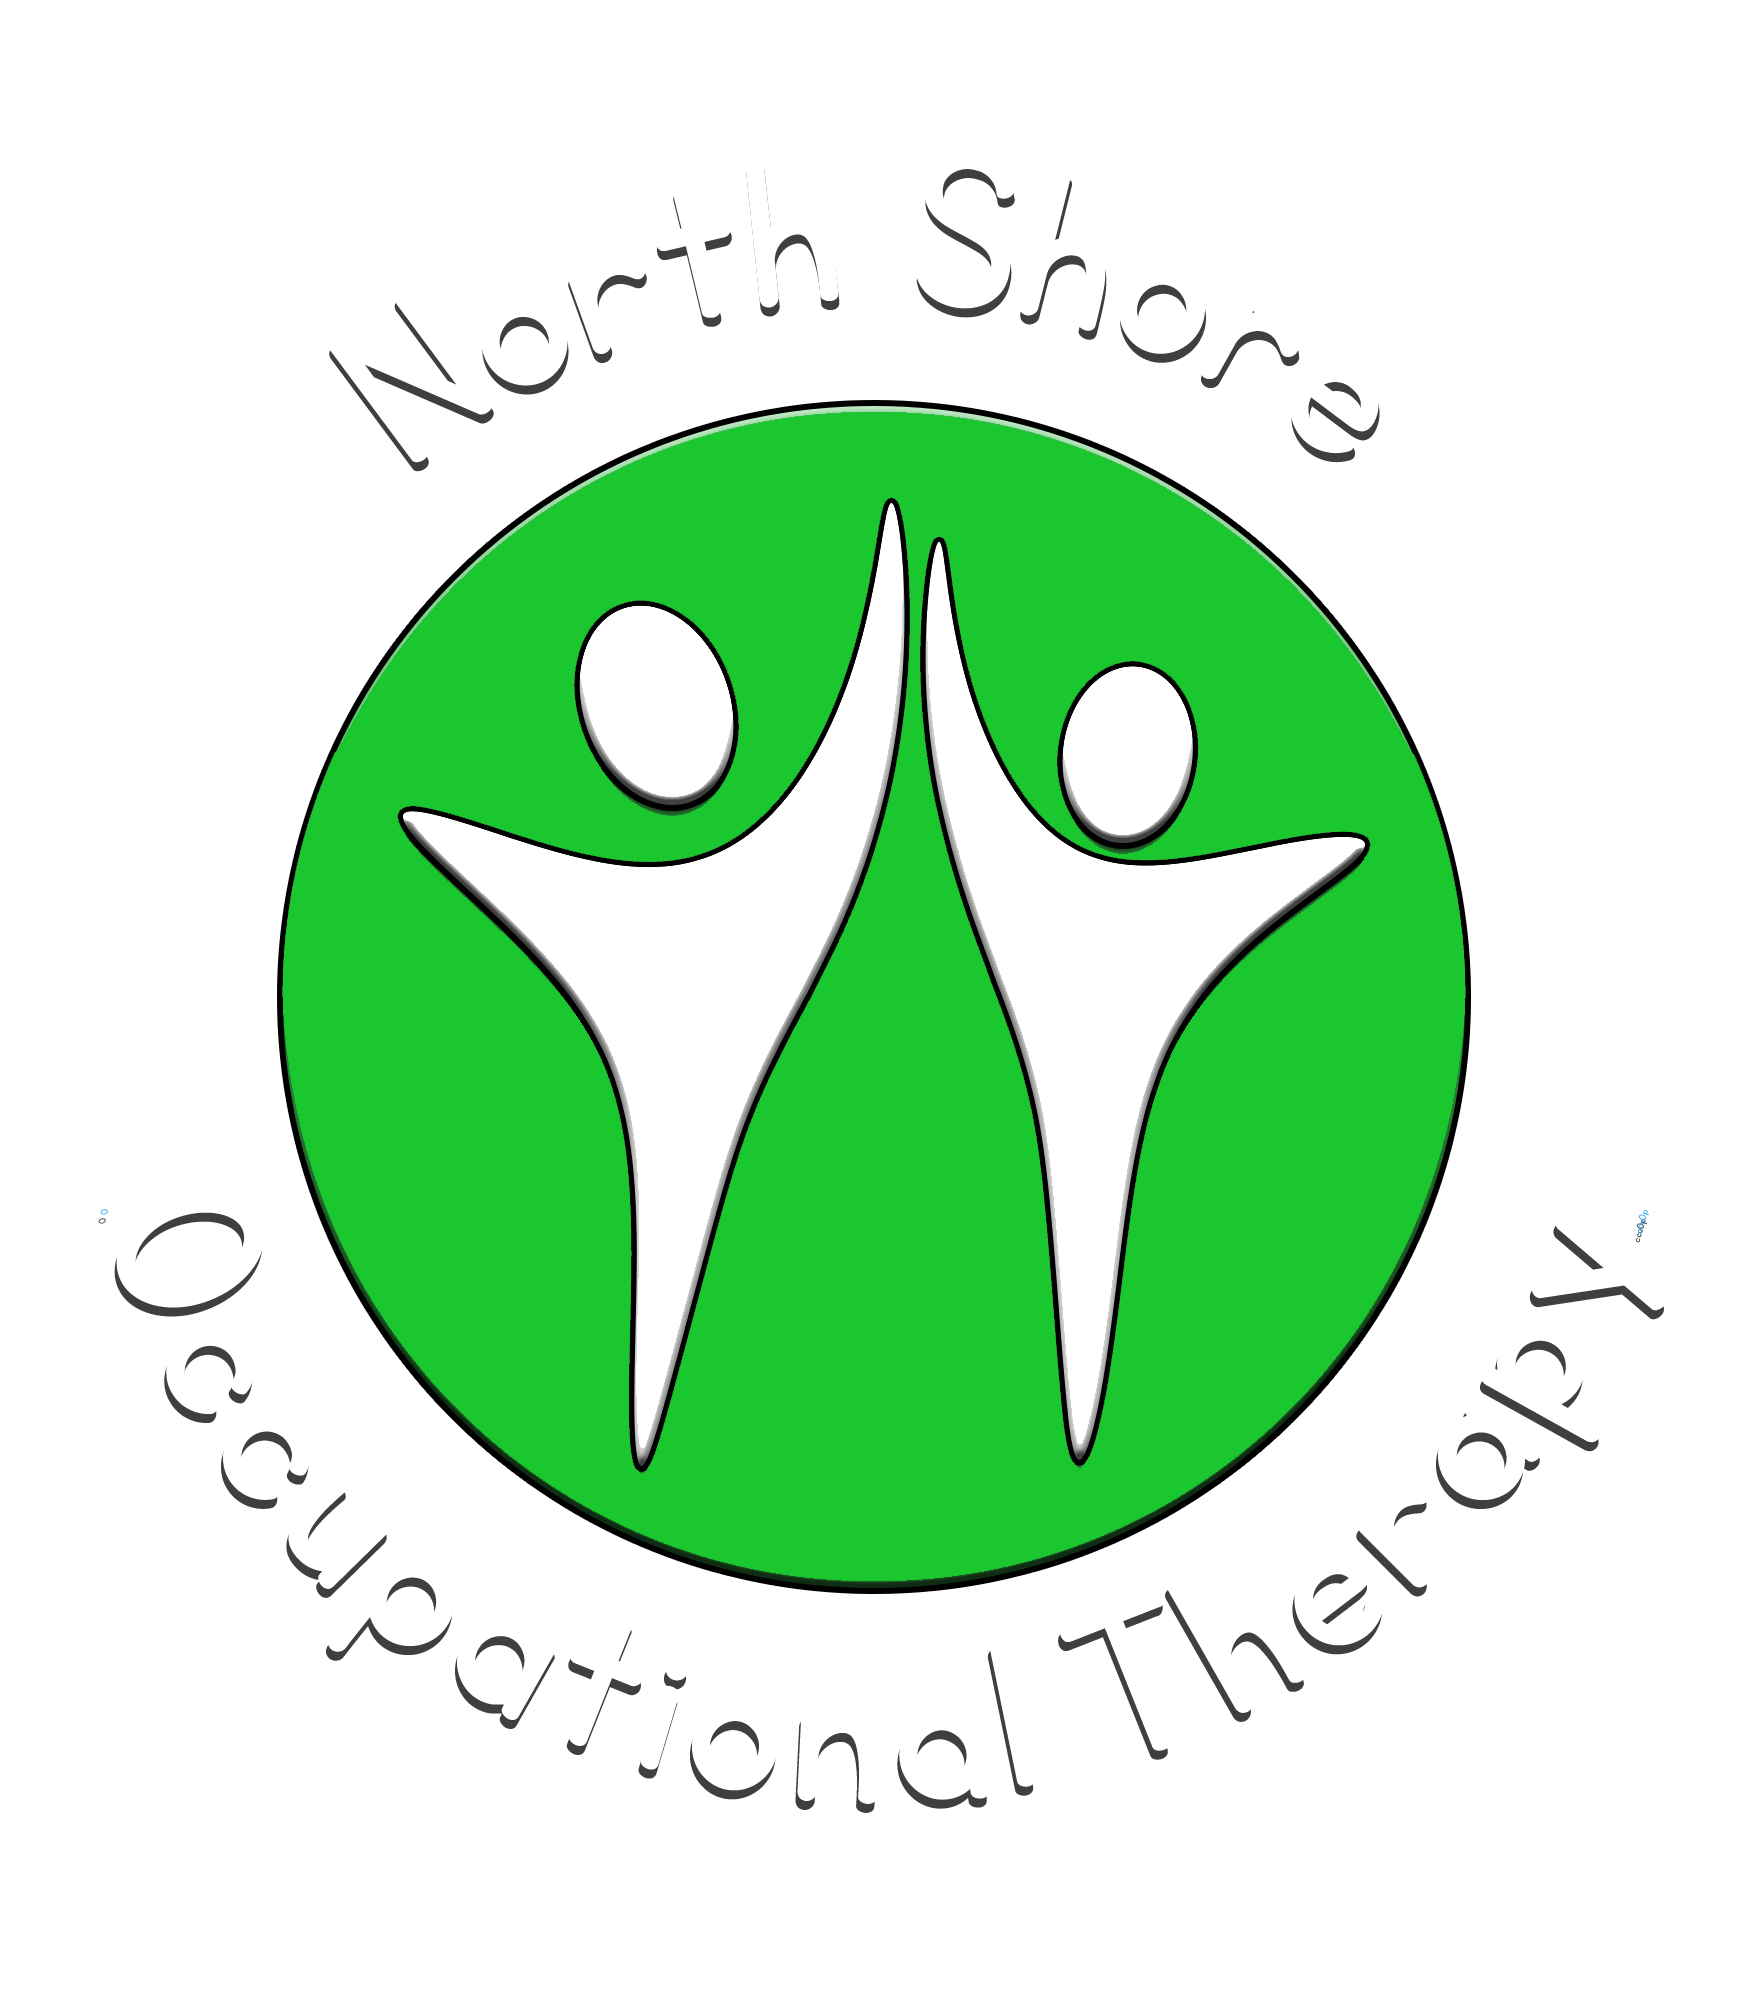 North Shore Occupational Therapy